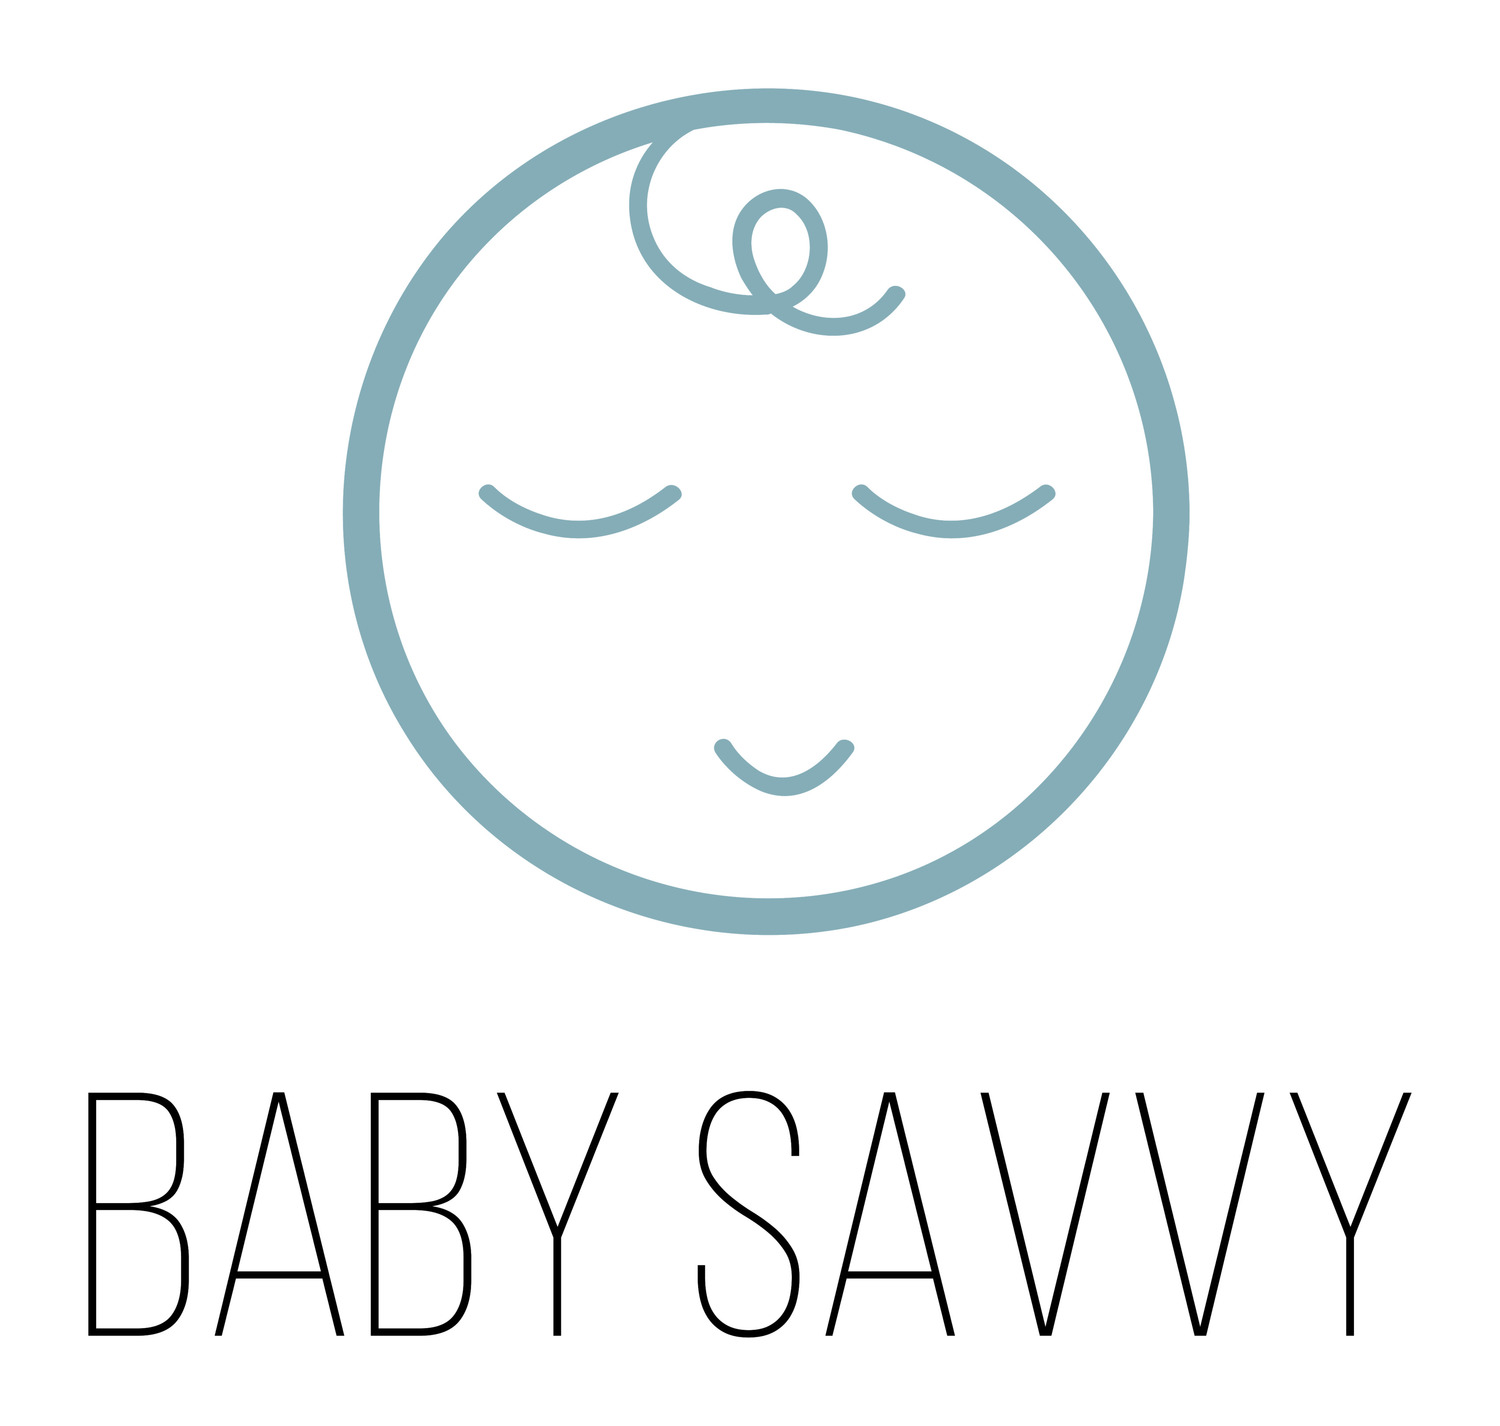 BabySavvy Co.